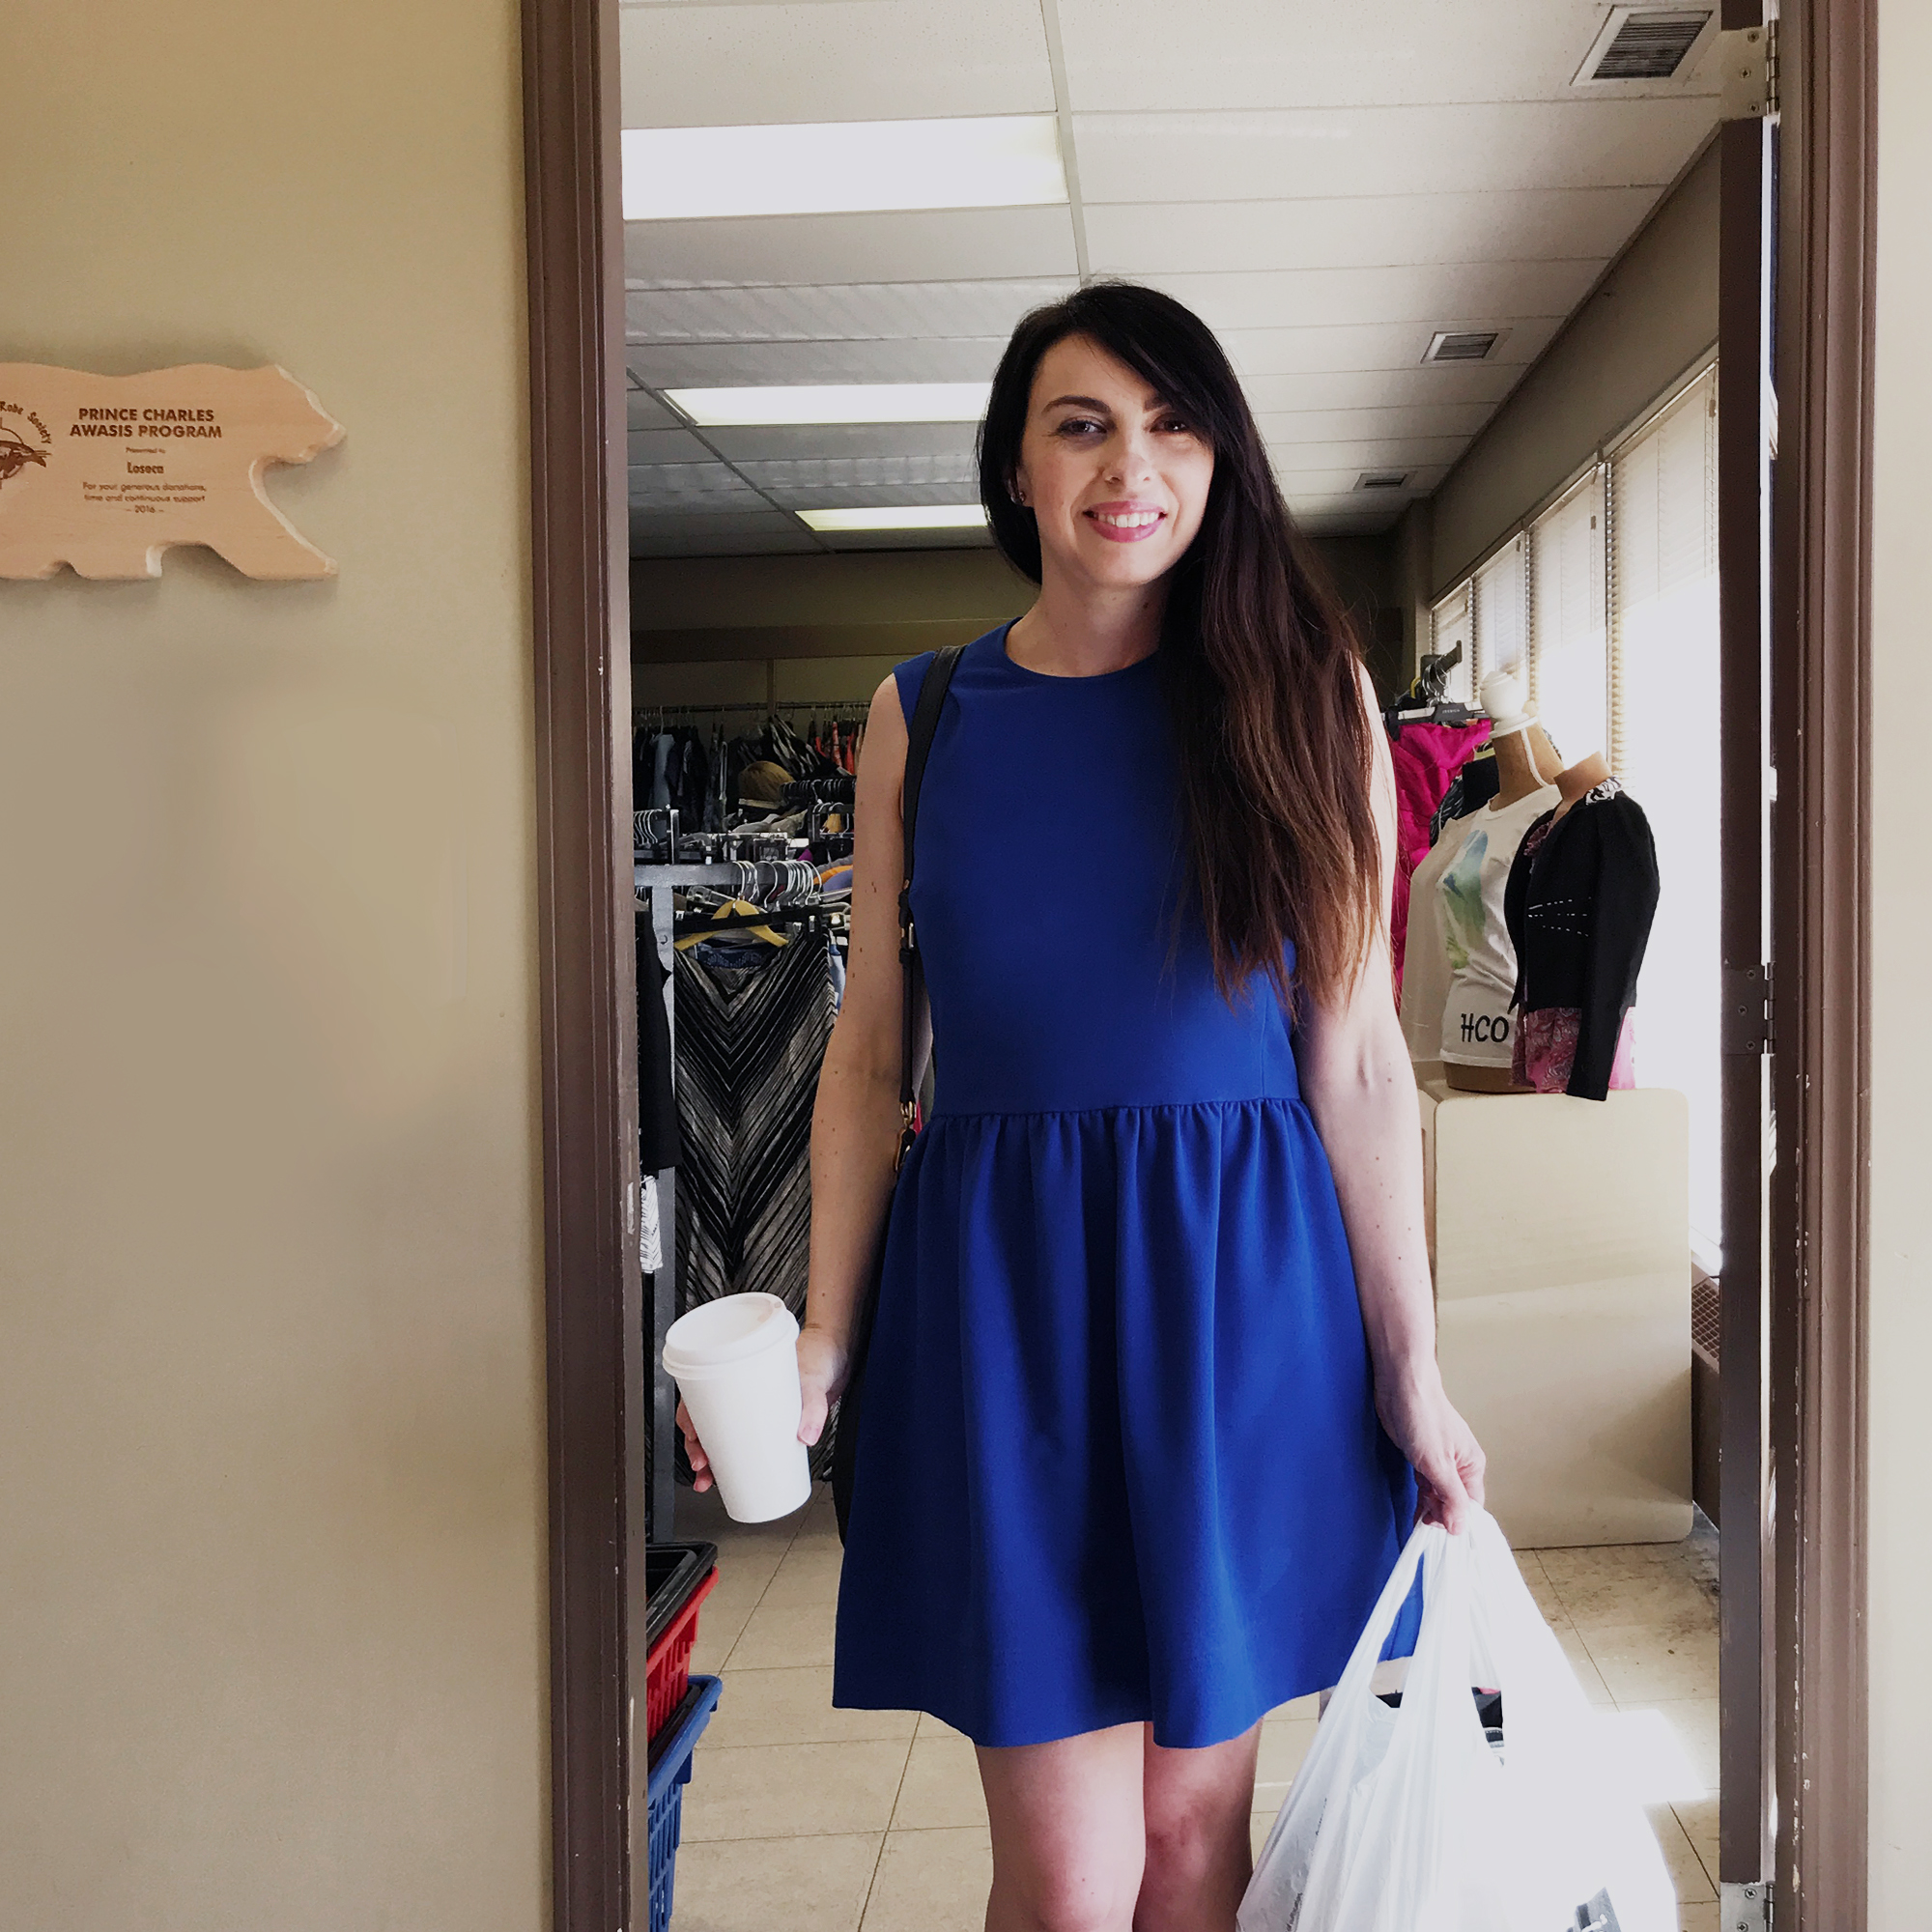 Life Preloved | Thrifted Style in Edmonton